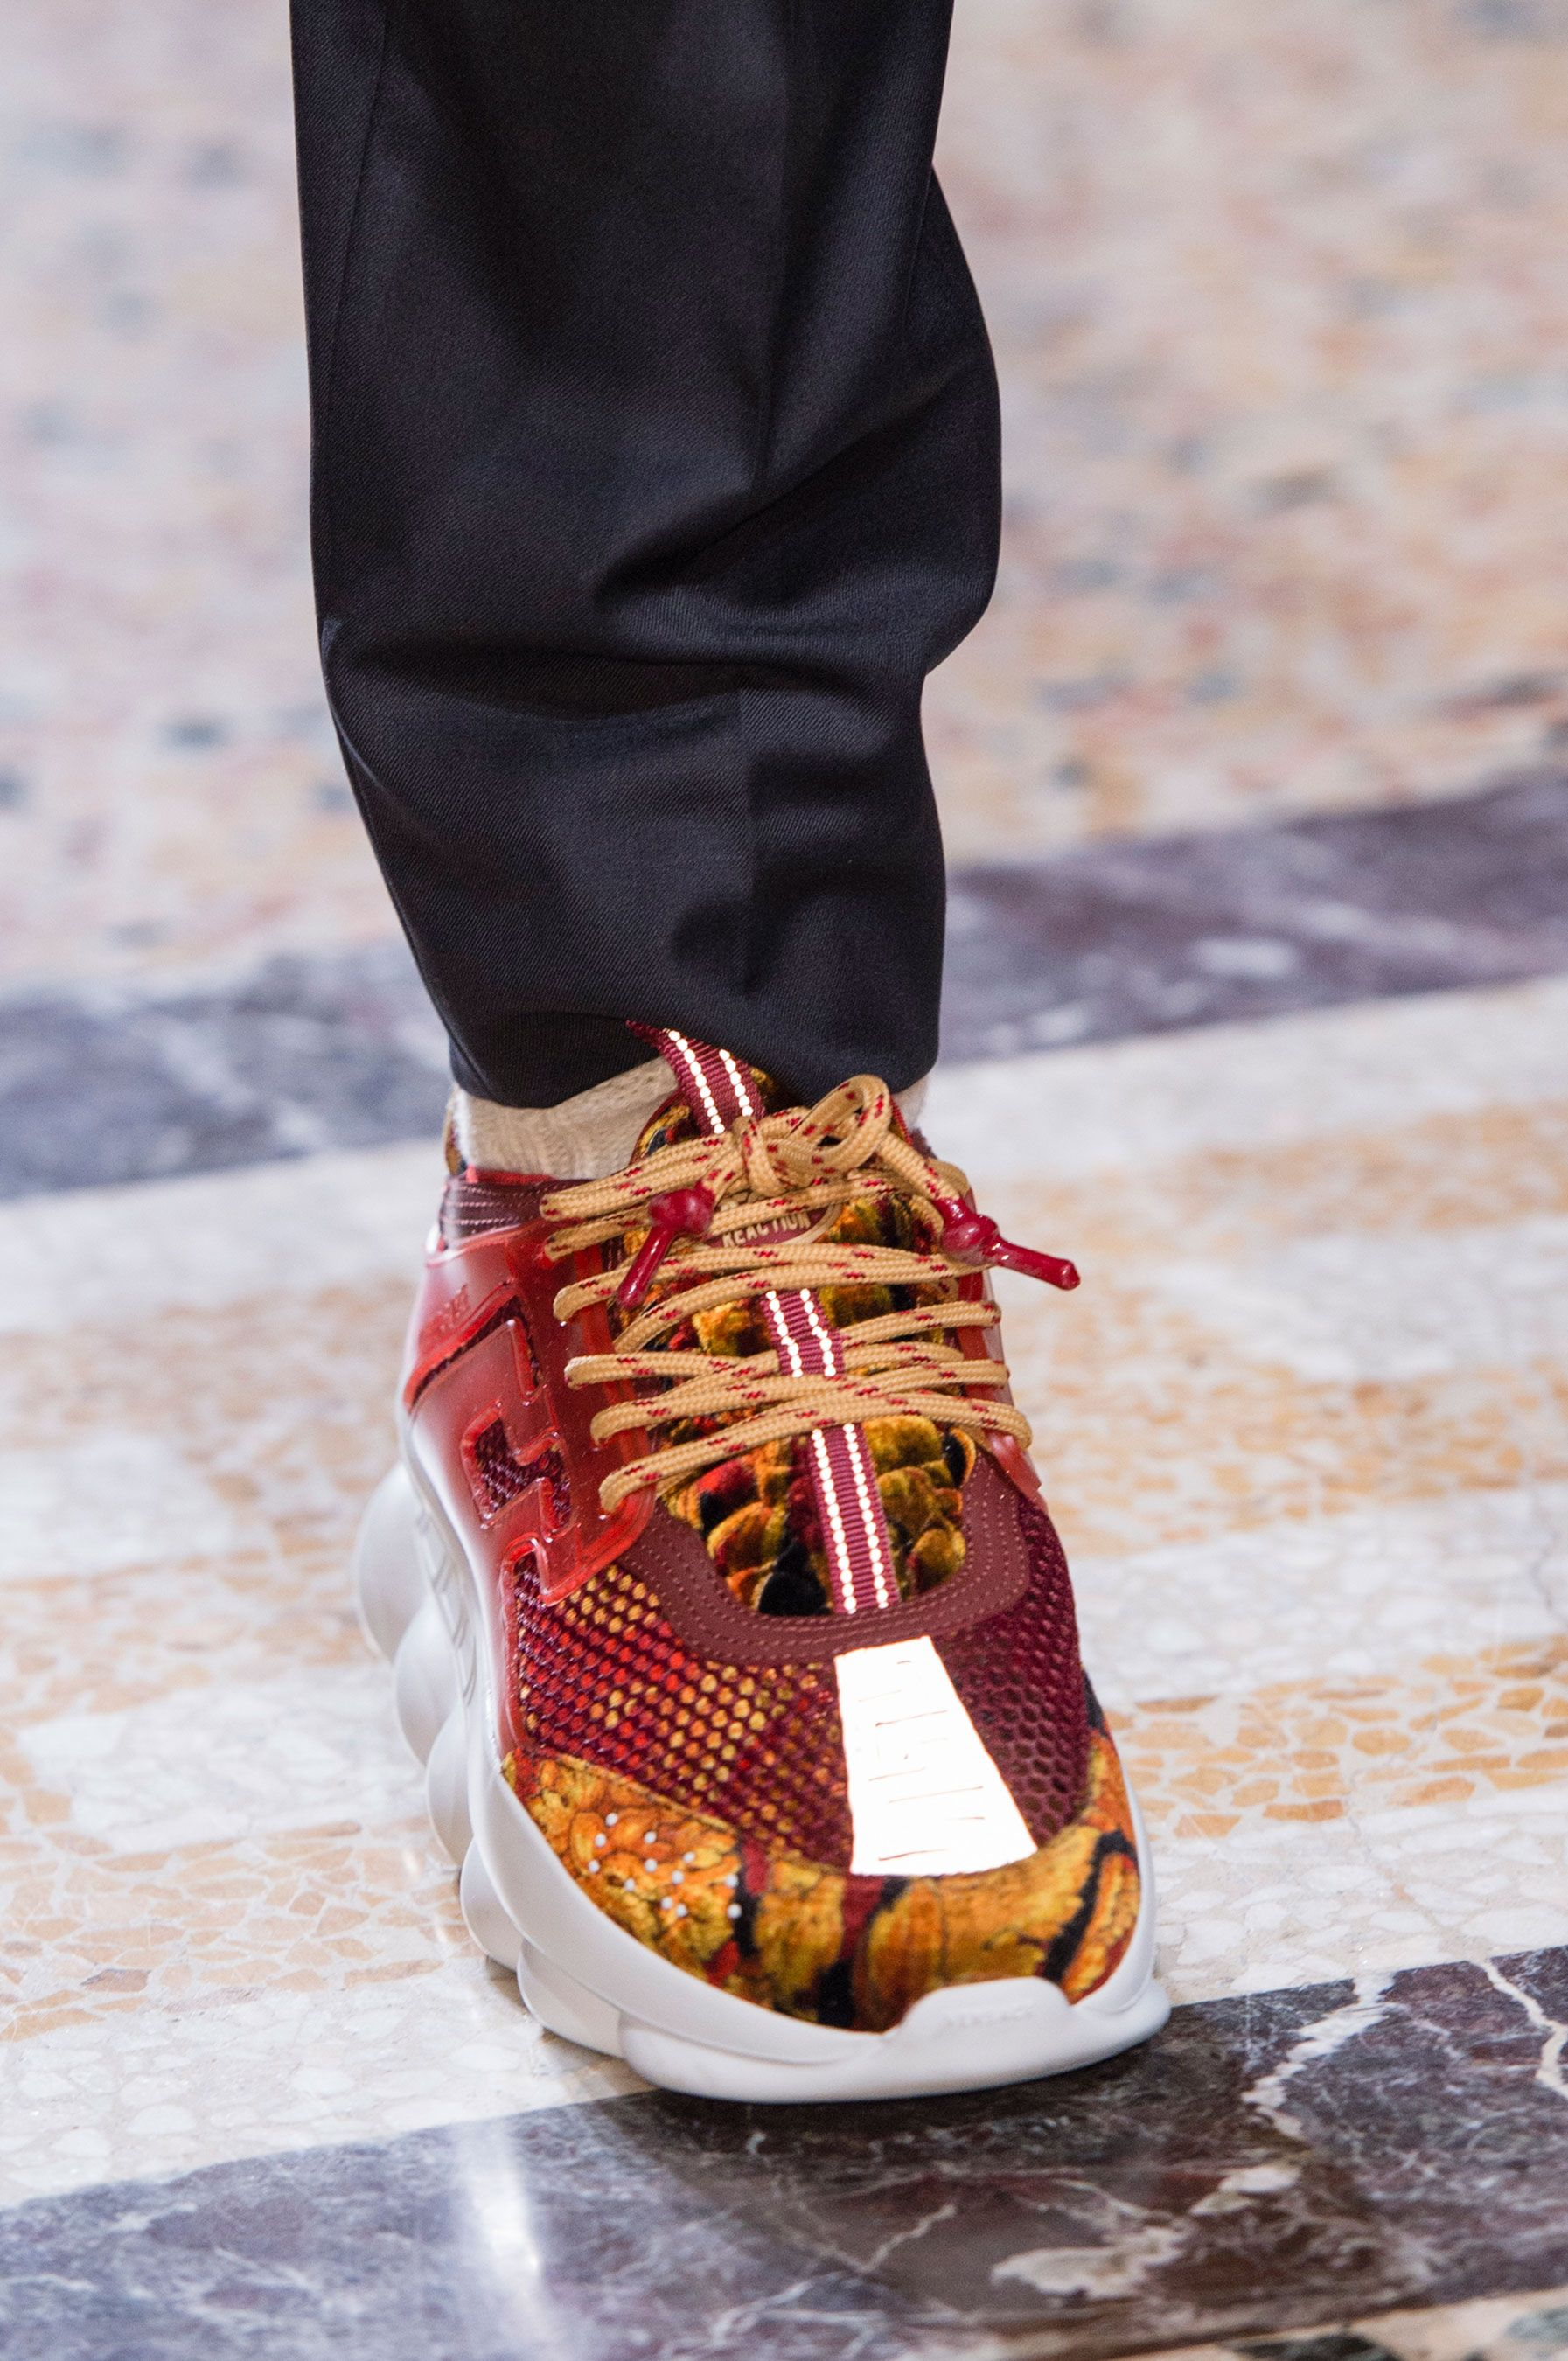 competitive price f3fa9 88b60 Versace Fall 2018 Men s Fashion Show Details - The Impression Sitios,  Zapatos, Tenis,